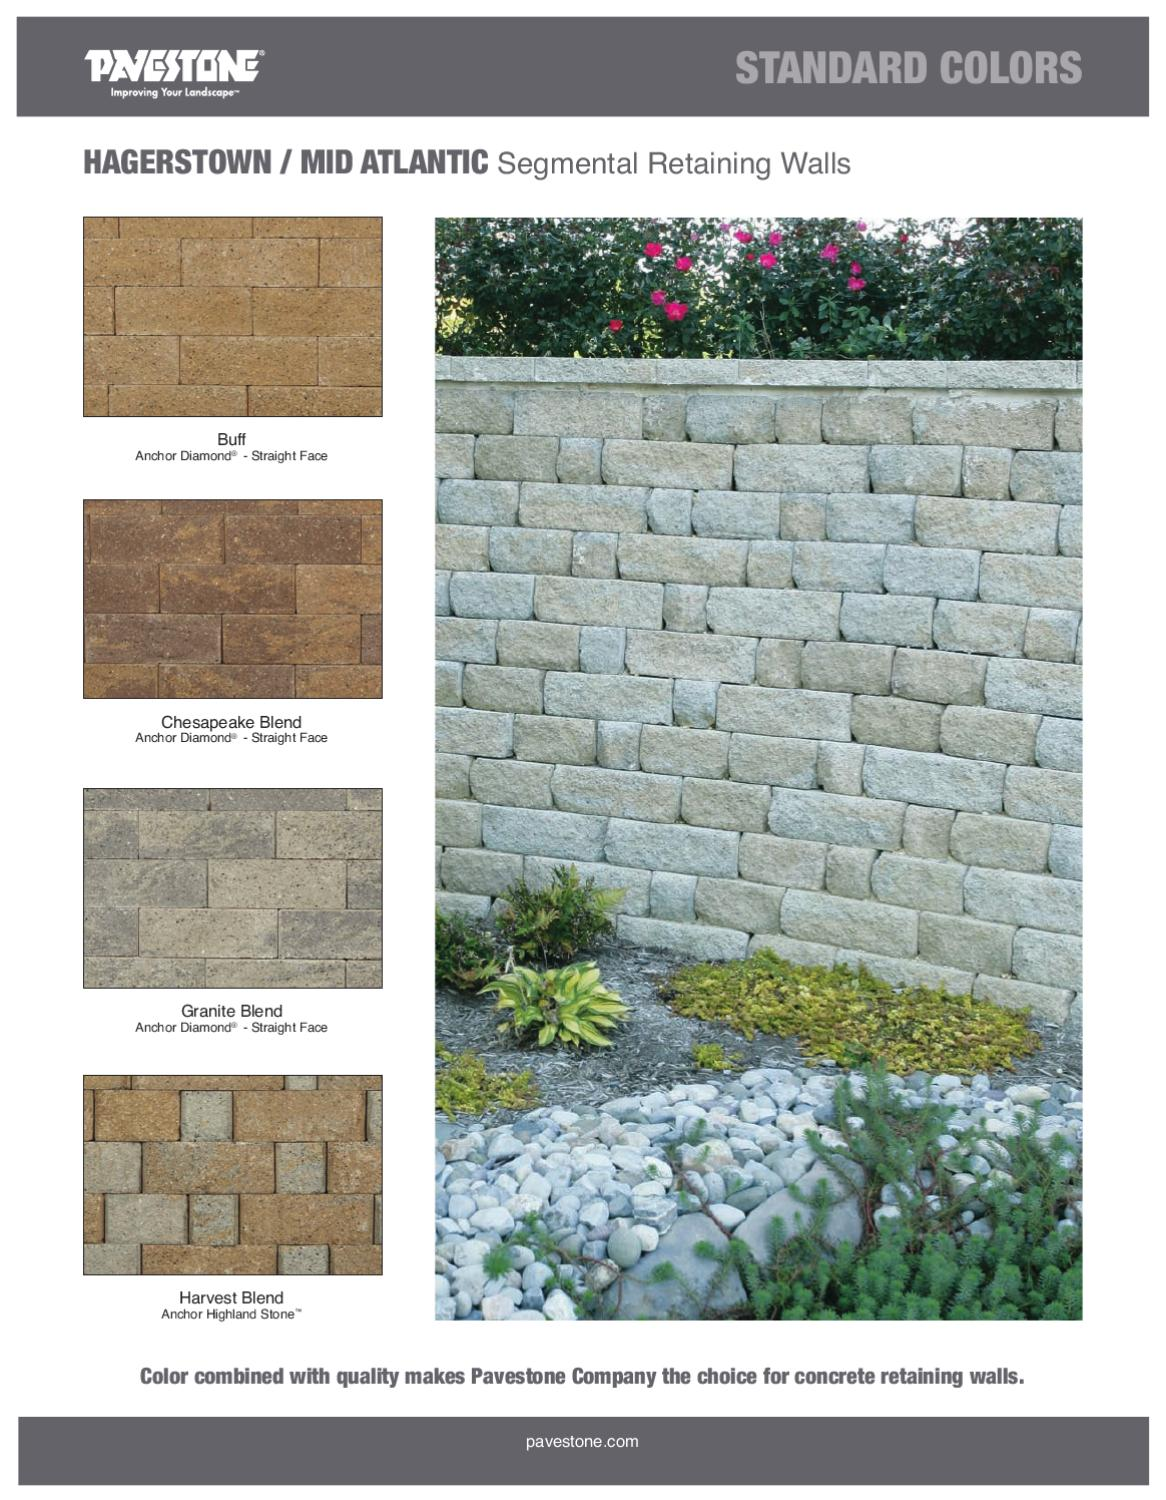 http://www pavestone com/images/stories/products/colors/0932